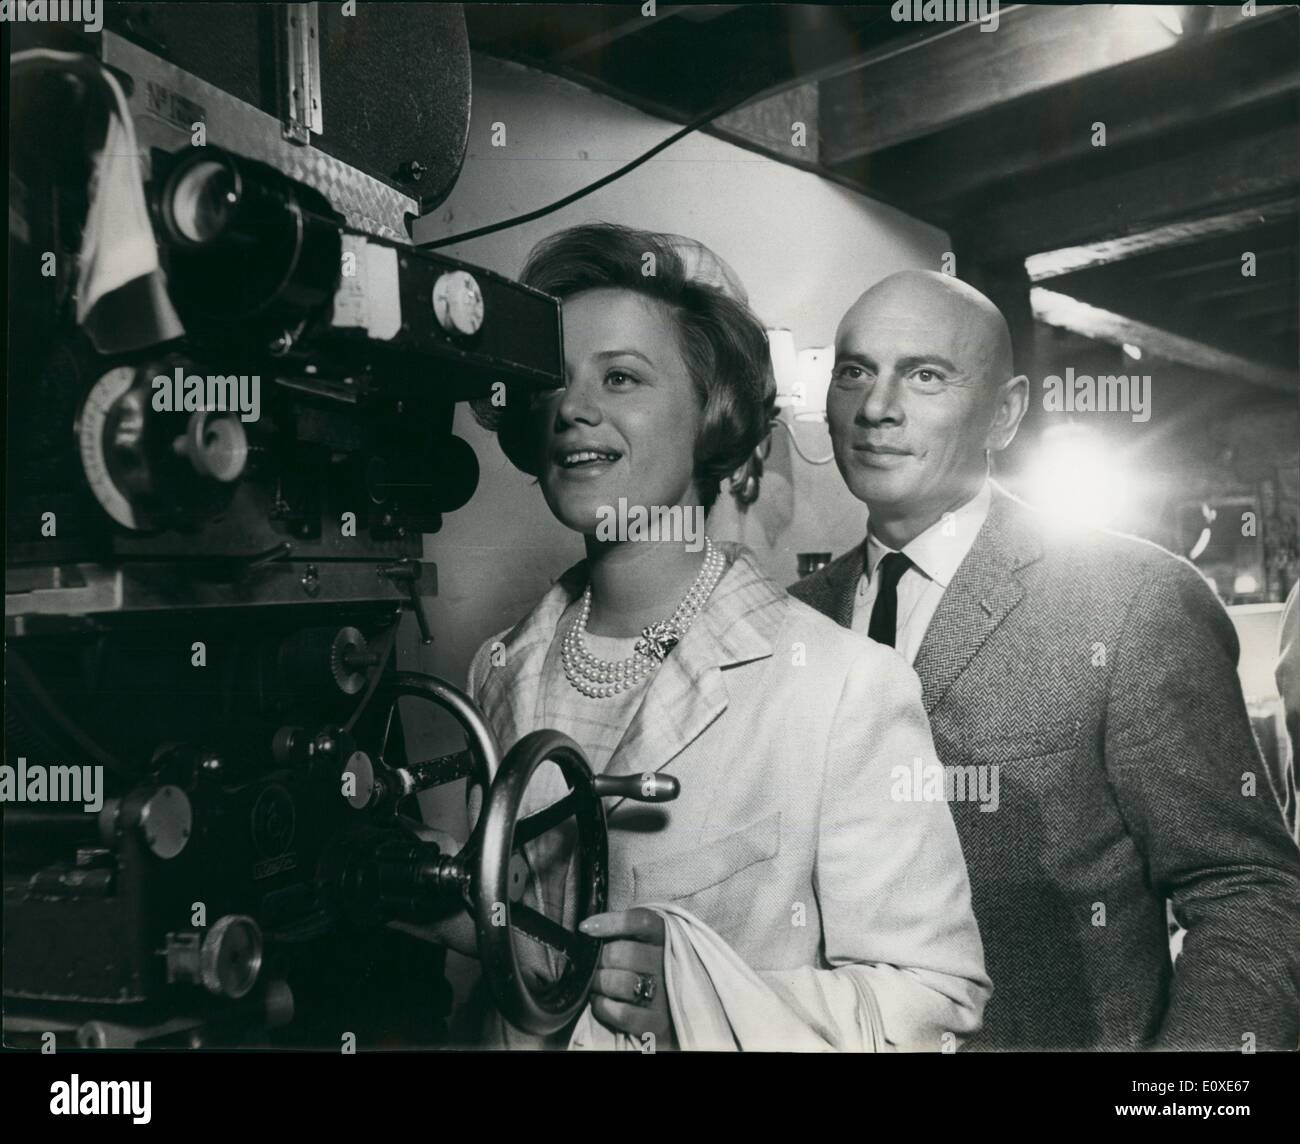 Jul. 07, 1966 - Princess Muna Visits Elstree Studios : H.R.H. Princess Muna of Jordan yesterday paid a visit to Associated British Productions at Elstree Studios and was taken on a conducted tour of various departments. At a lunch time reception, she was introduced to the stars working at Elstree Yul Brynner and Britt Ekland from the Warner Bros.production ''The Double Man''; Roger Moore, from ''The Saint'' TV Series and Steve Forrest and Sue Lloyd from ''The Baron'' TV Series. After lunch, the Princess visited the sets and renewed acquaintance with the stars she met at lunch - Stock Image